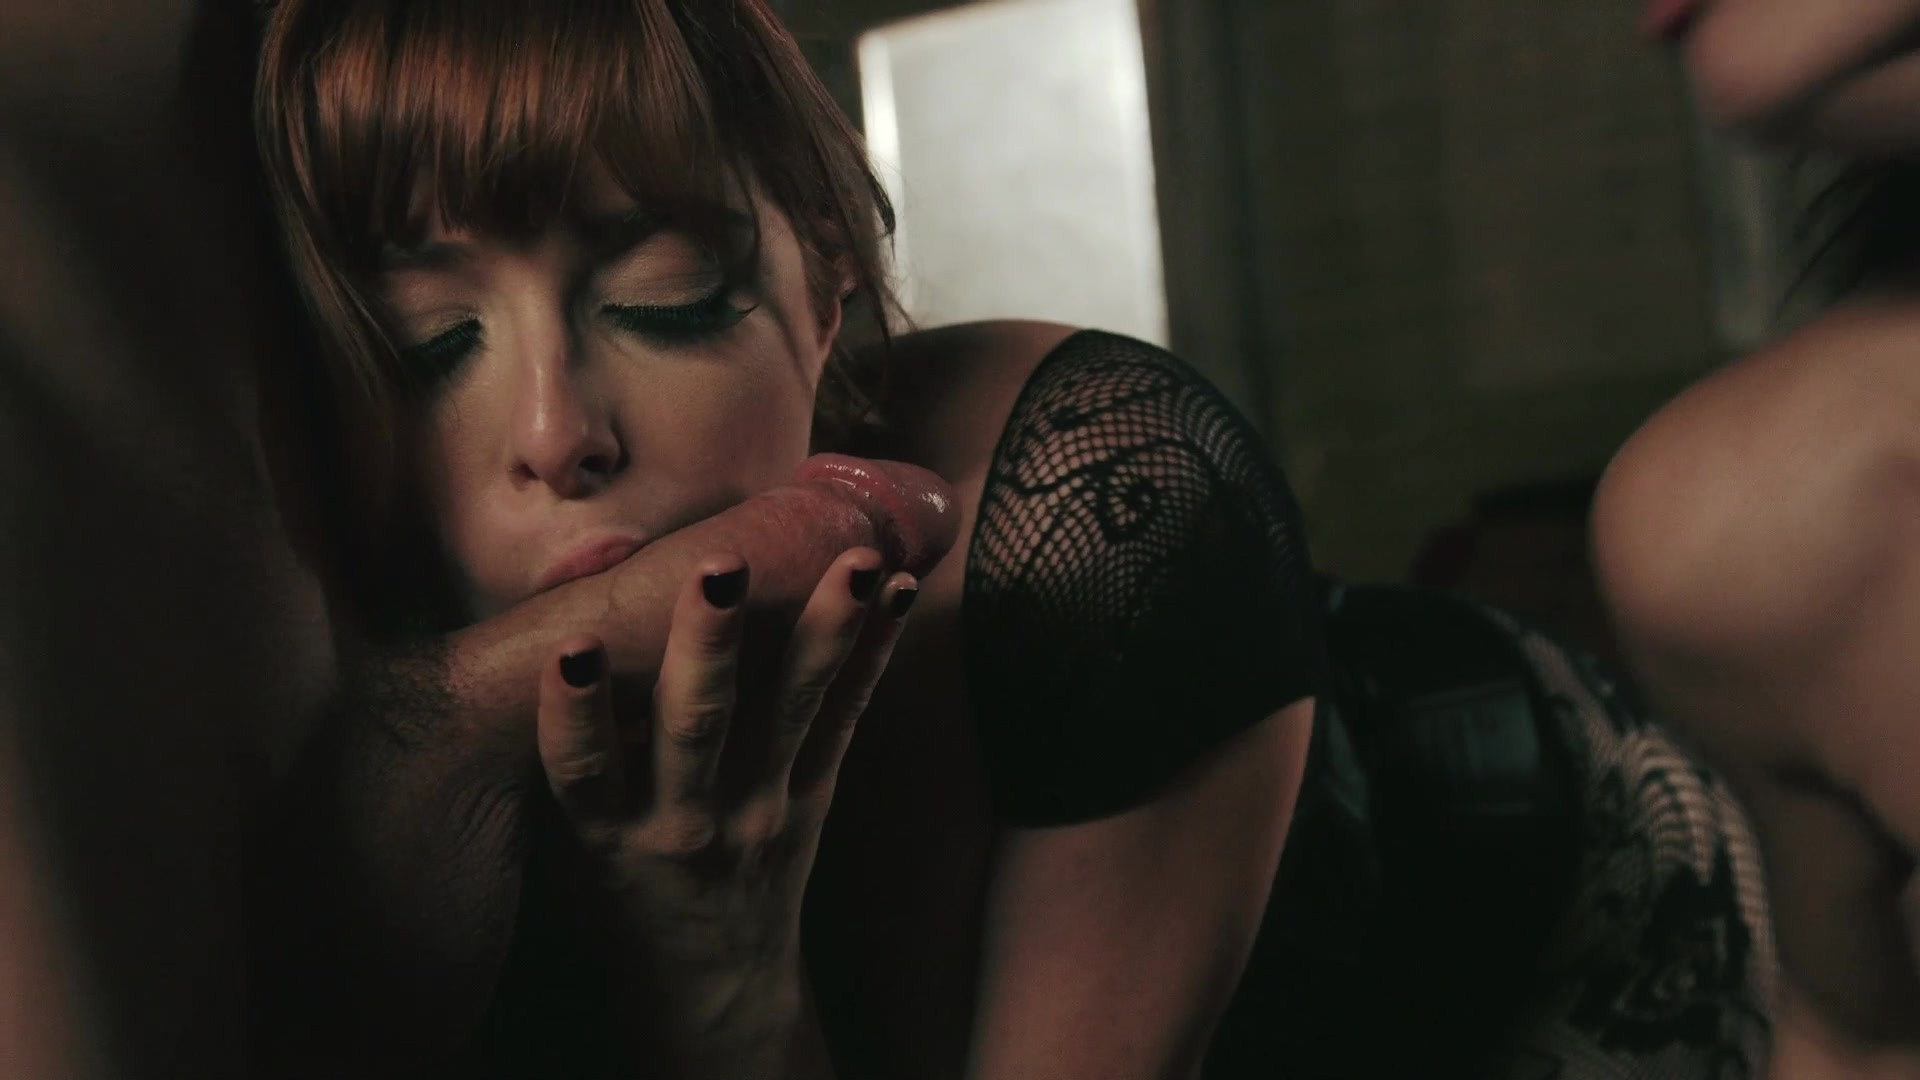 Scene with Richie Calhoun, Penny Pax and Aidra Fox - image 16 out of 20